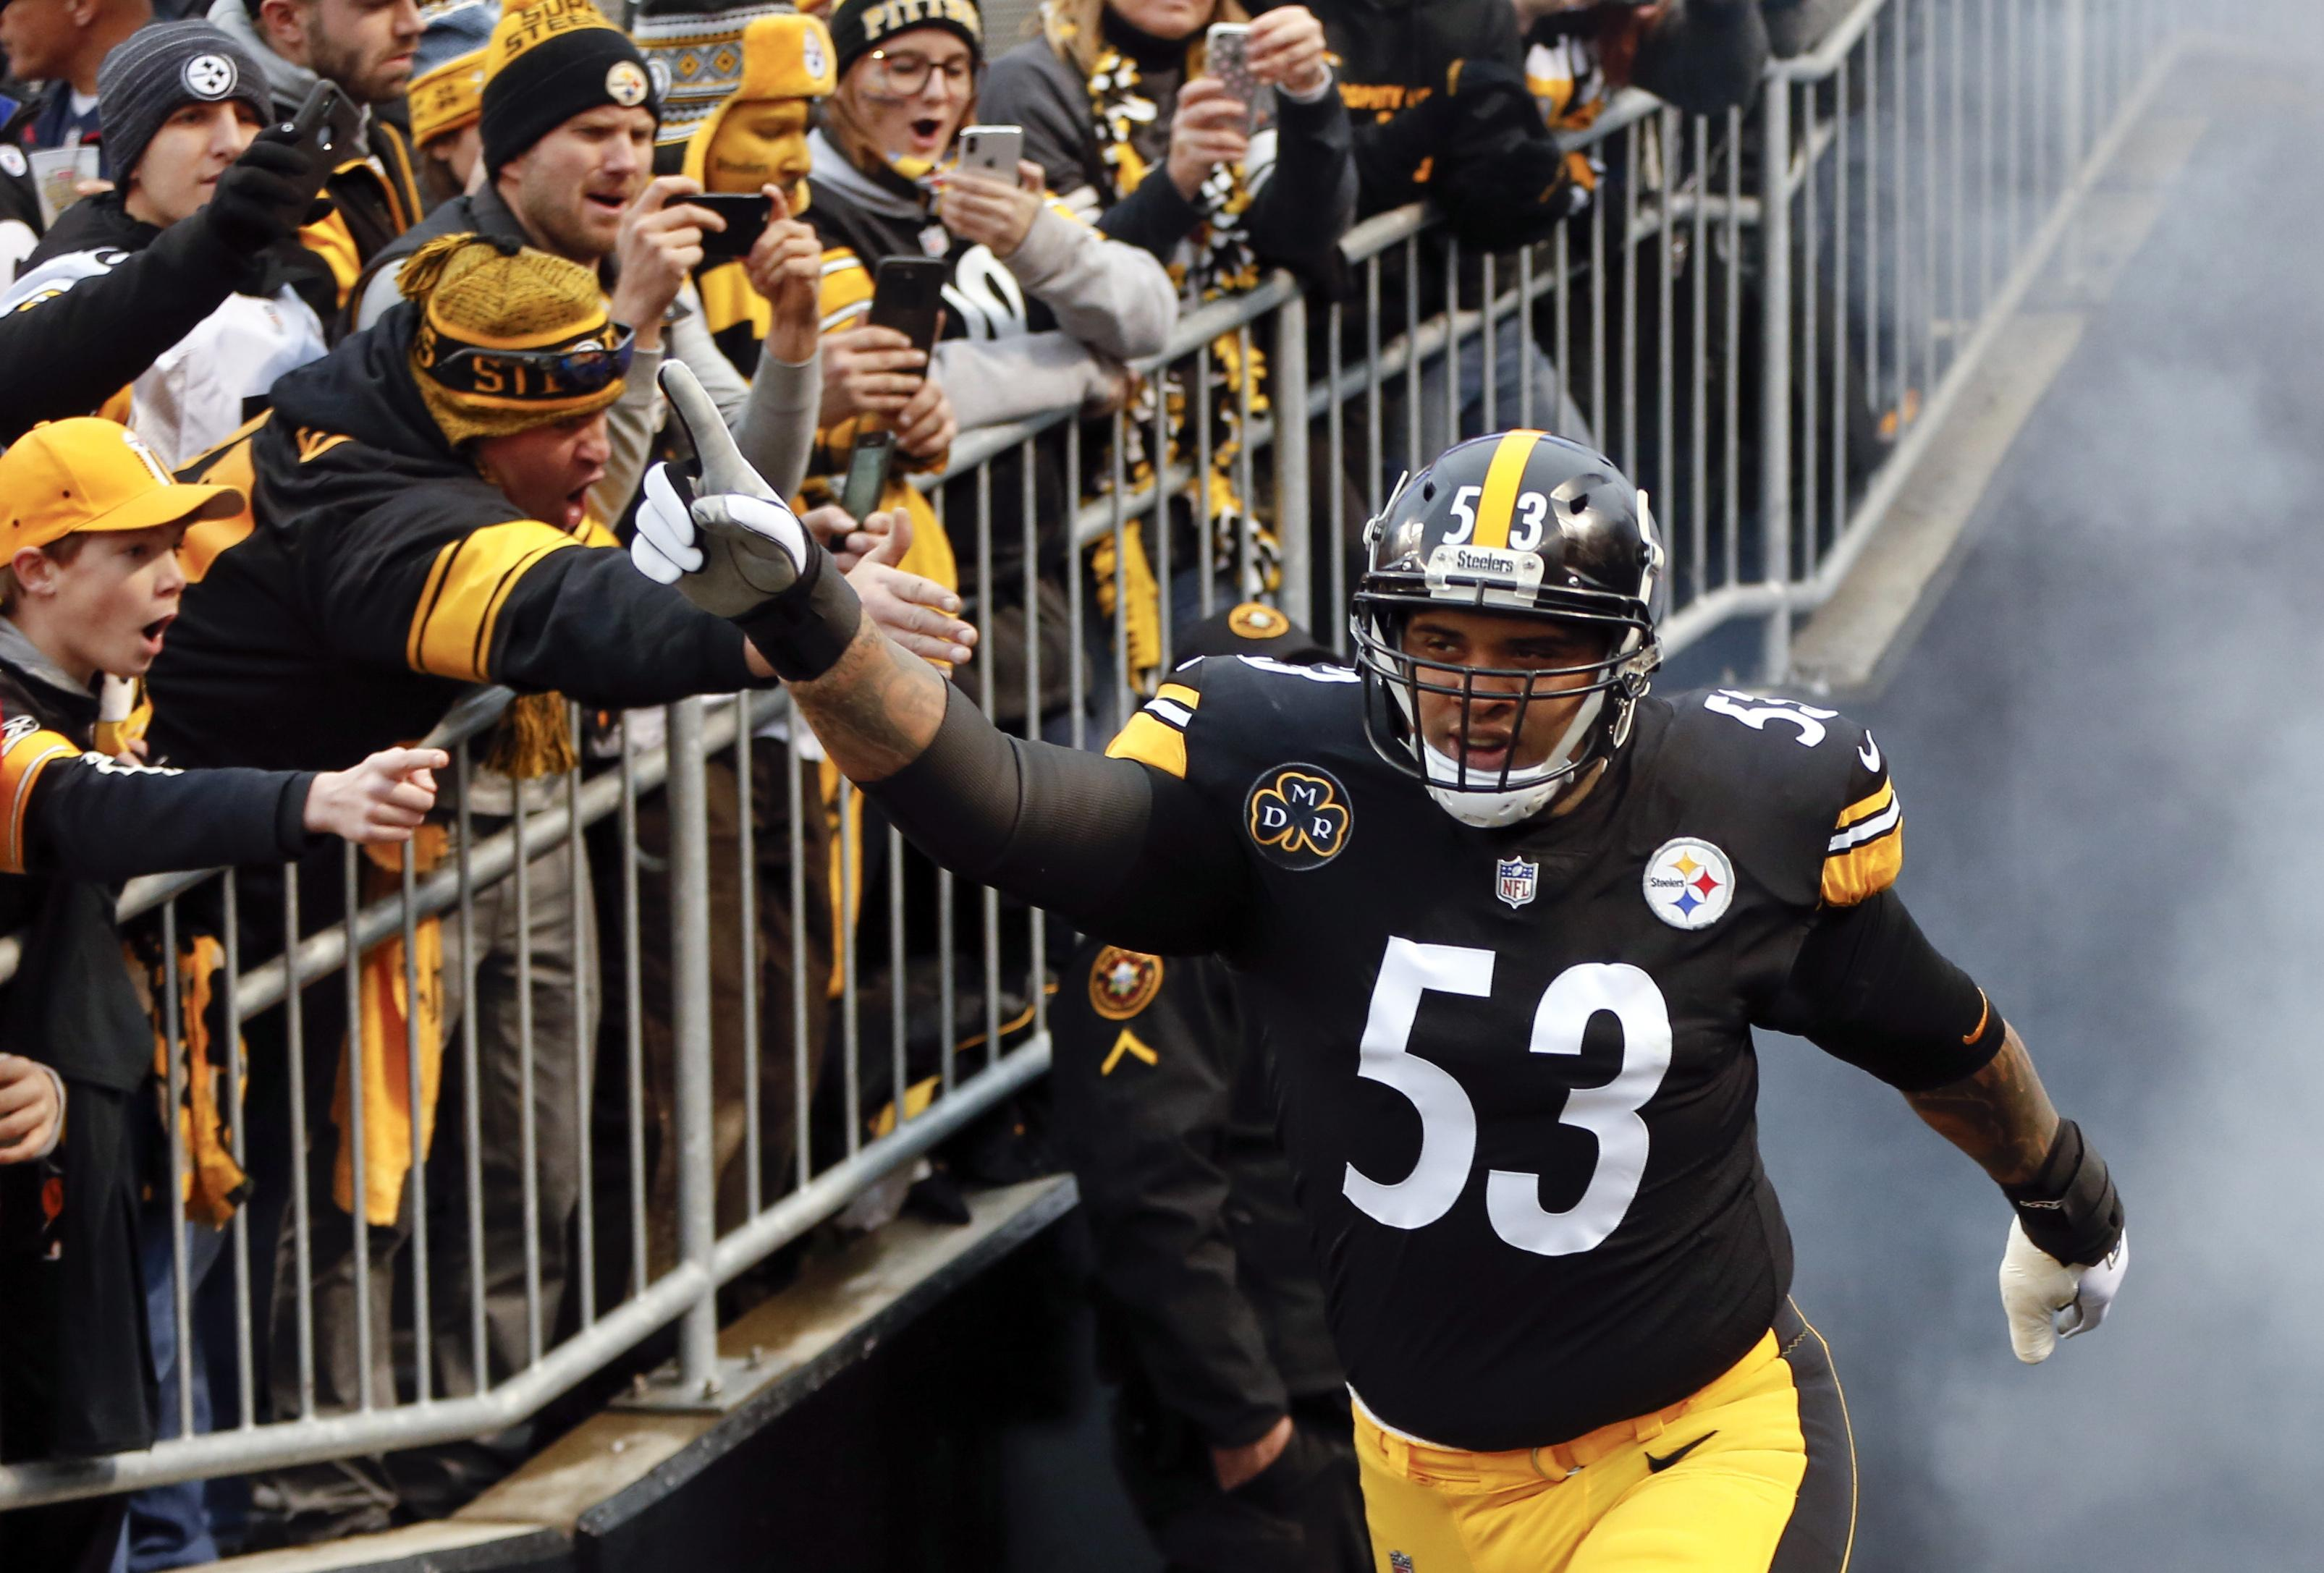 sports shoes 938e9 29385 Steelers shore up line, sign Maurkice Pouncey and Ramon ...